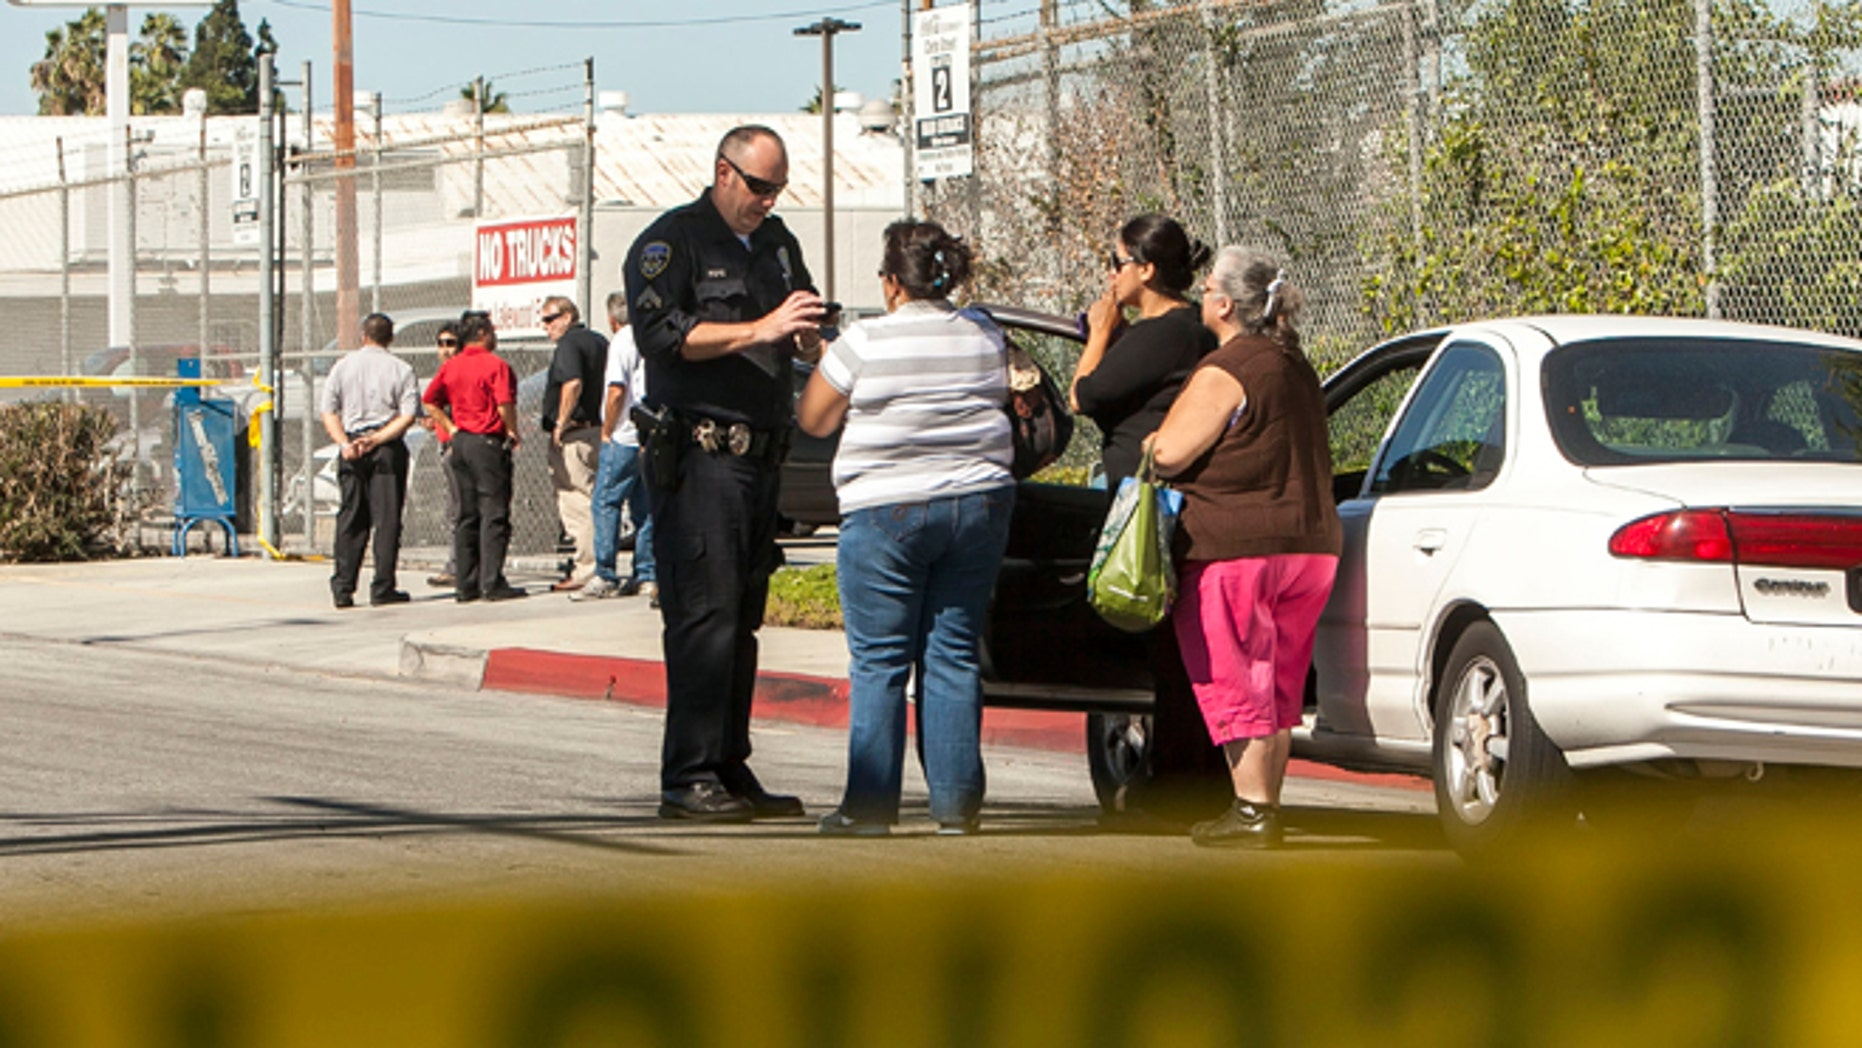 Oct. 24, 2012: Police investigators talk to people across the street from a family-owned business, United States Fire Protection Services, in Downey, Calif.